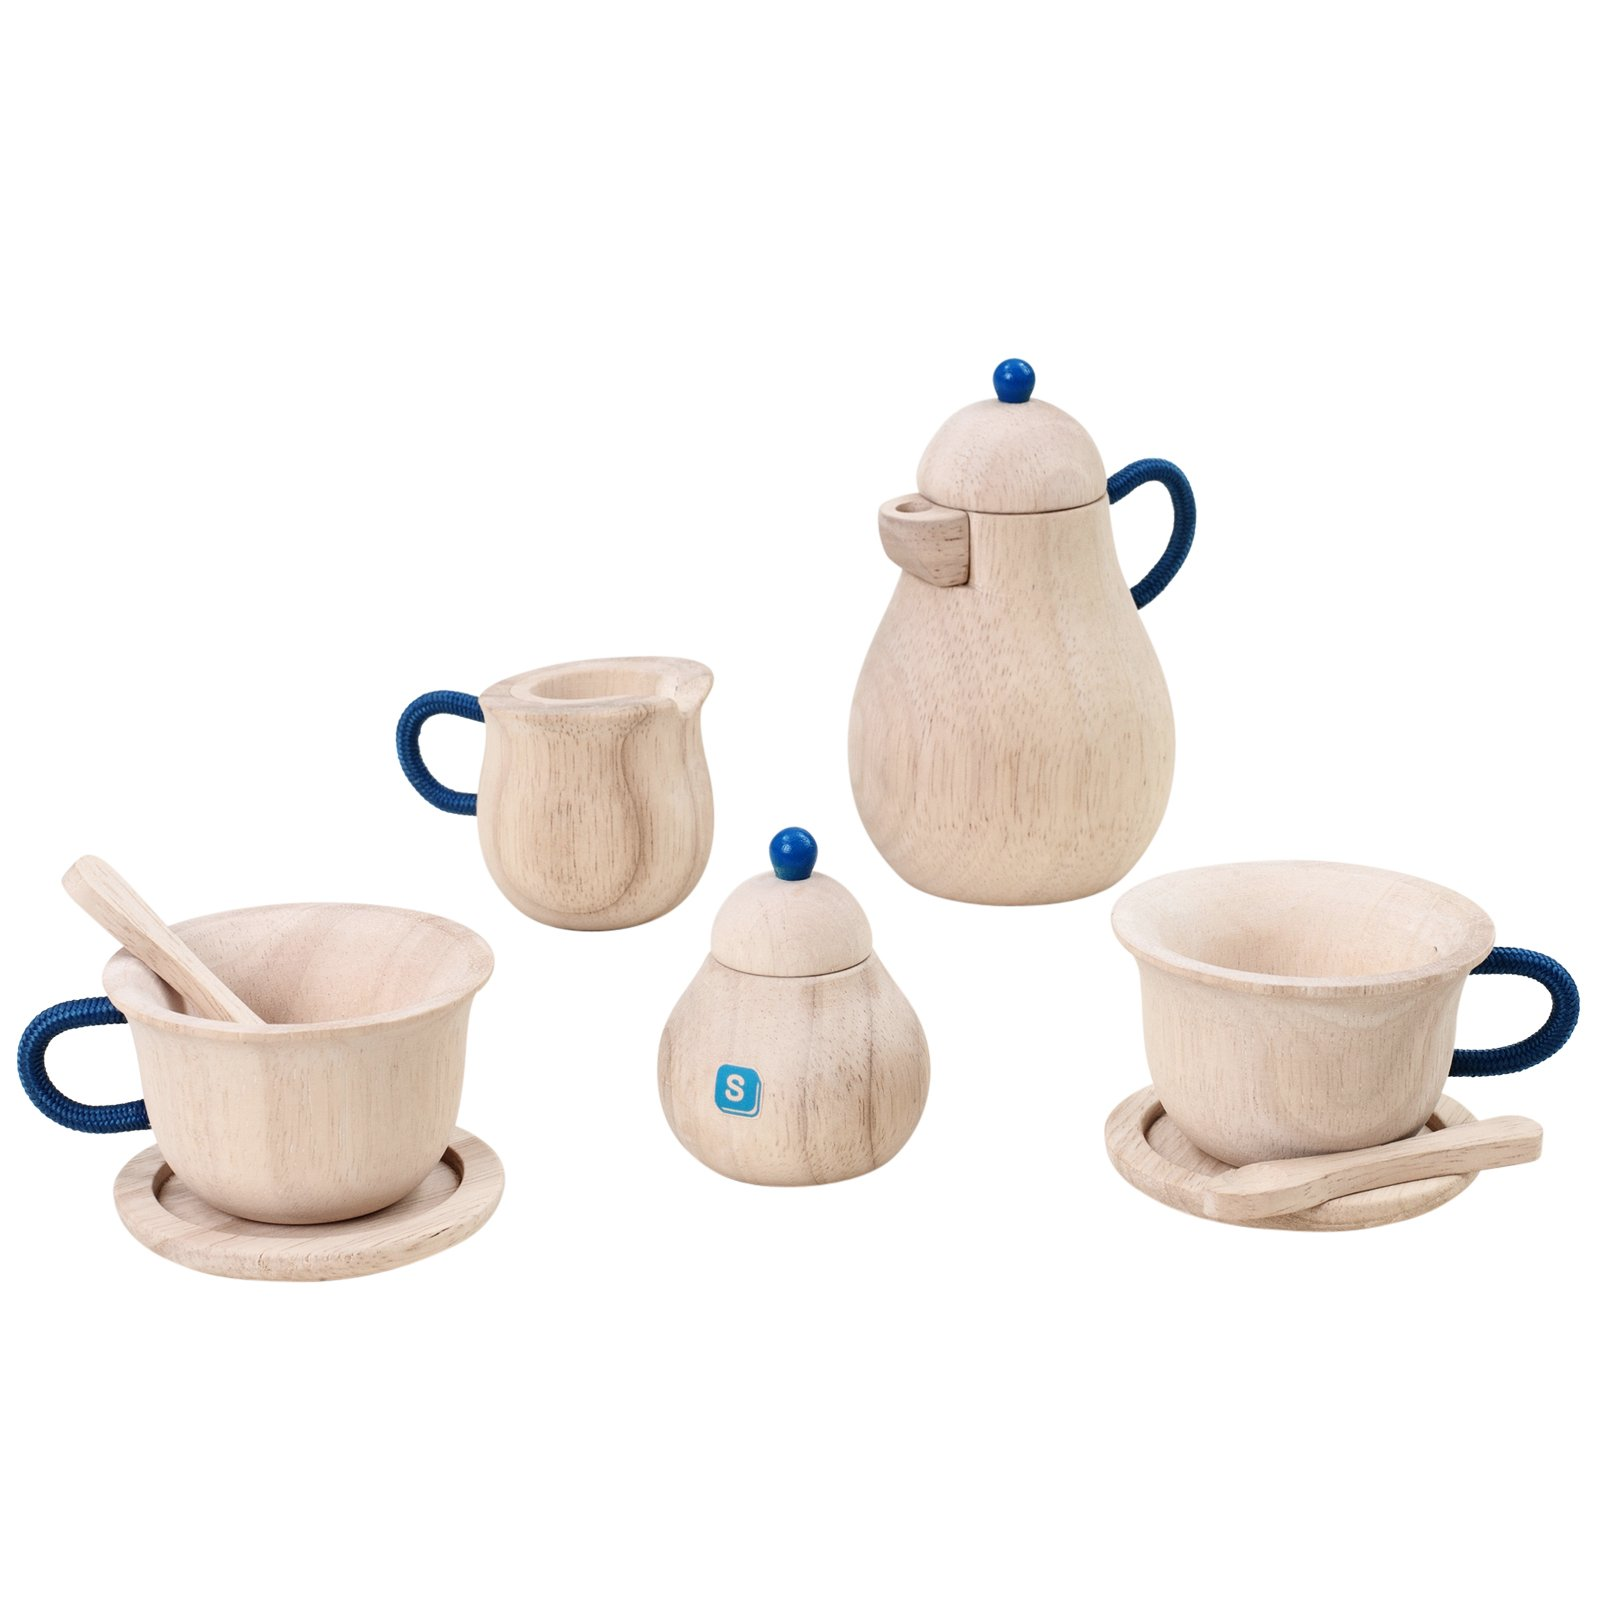 Wonderworld Tea Time Play Set ($26.00)